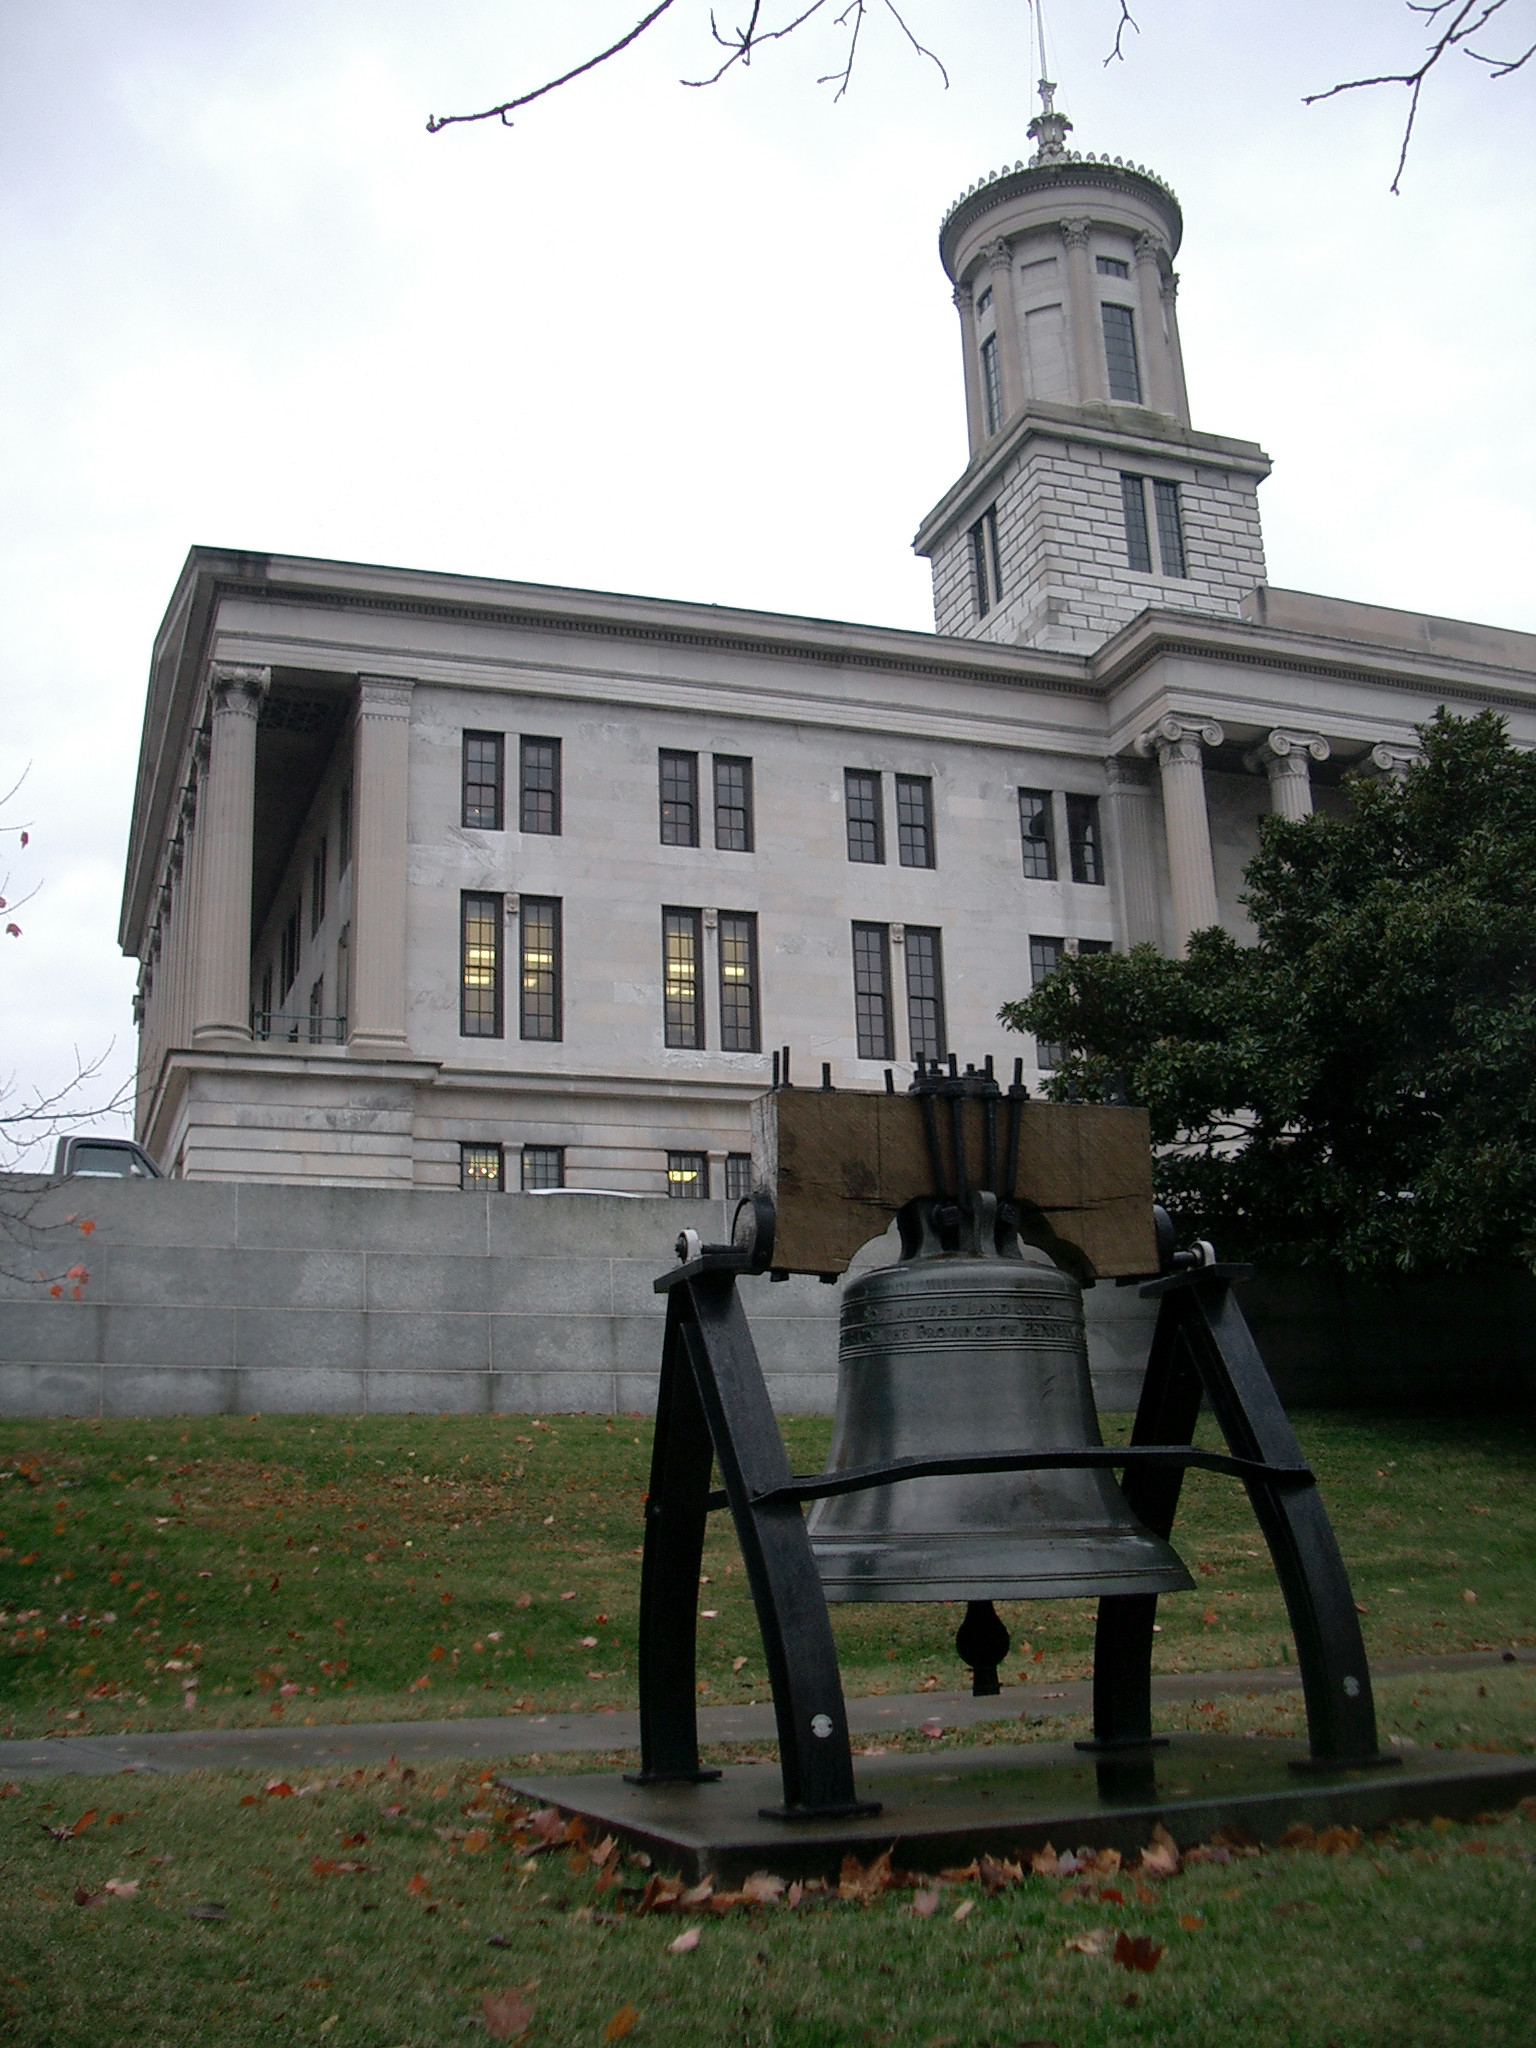 Tennessee Liberty Bell replica